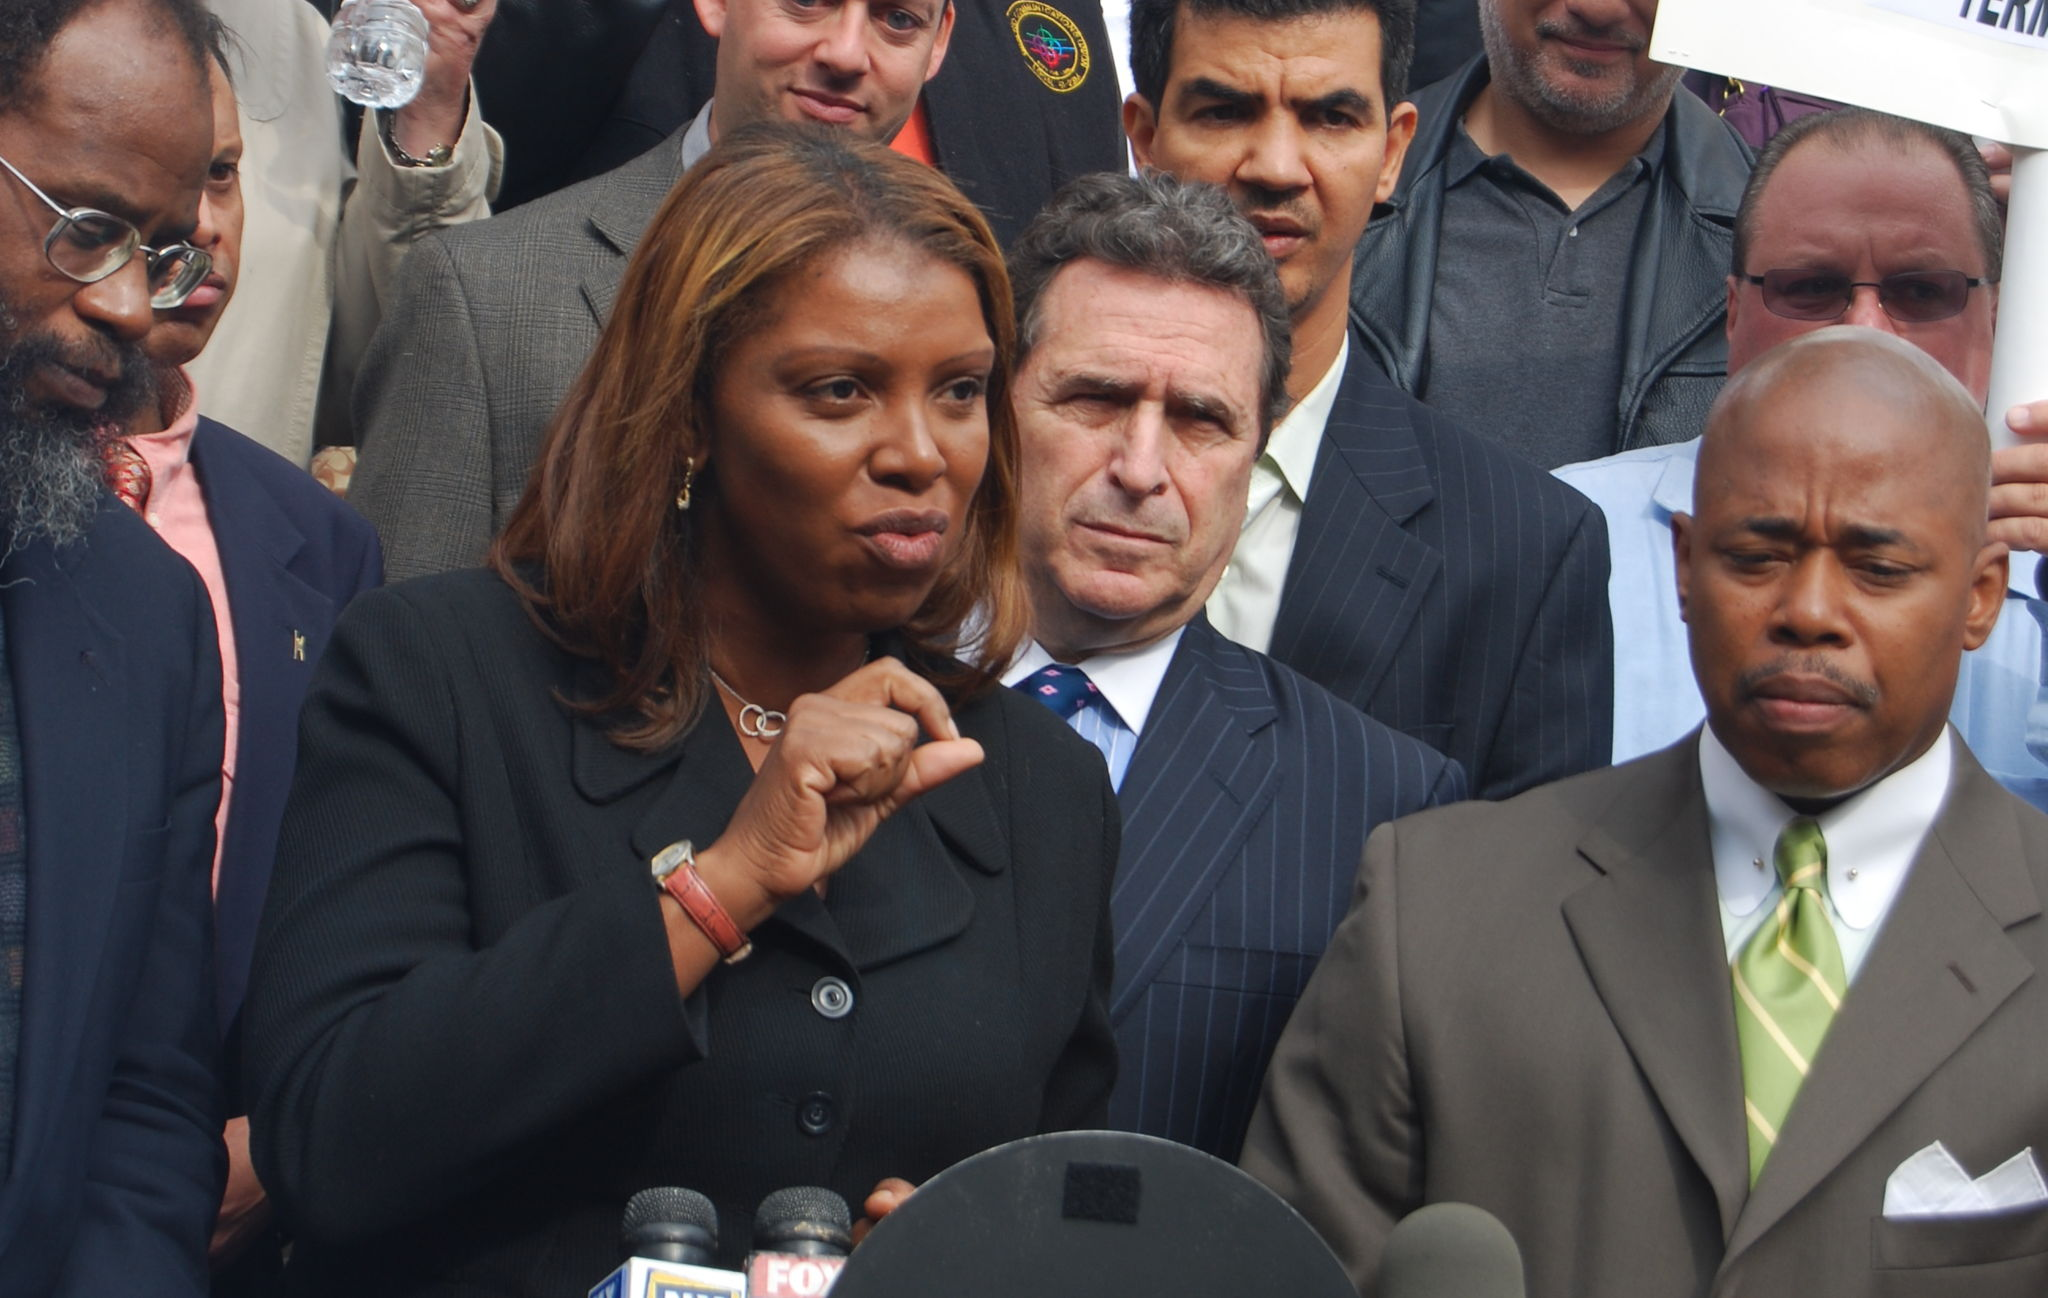 James speaking at a 2008 press conference.